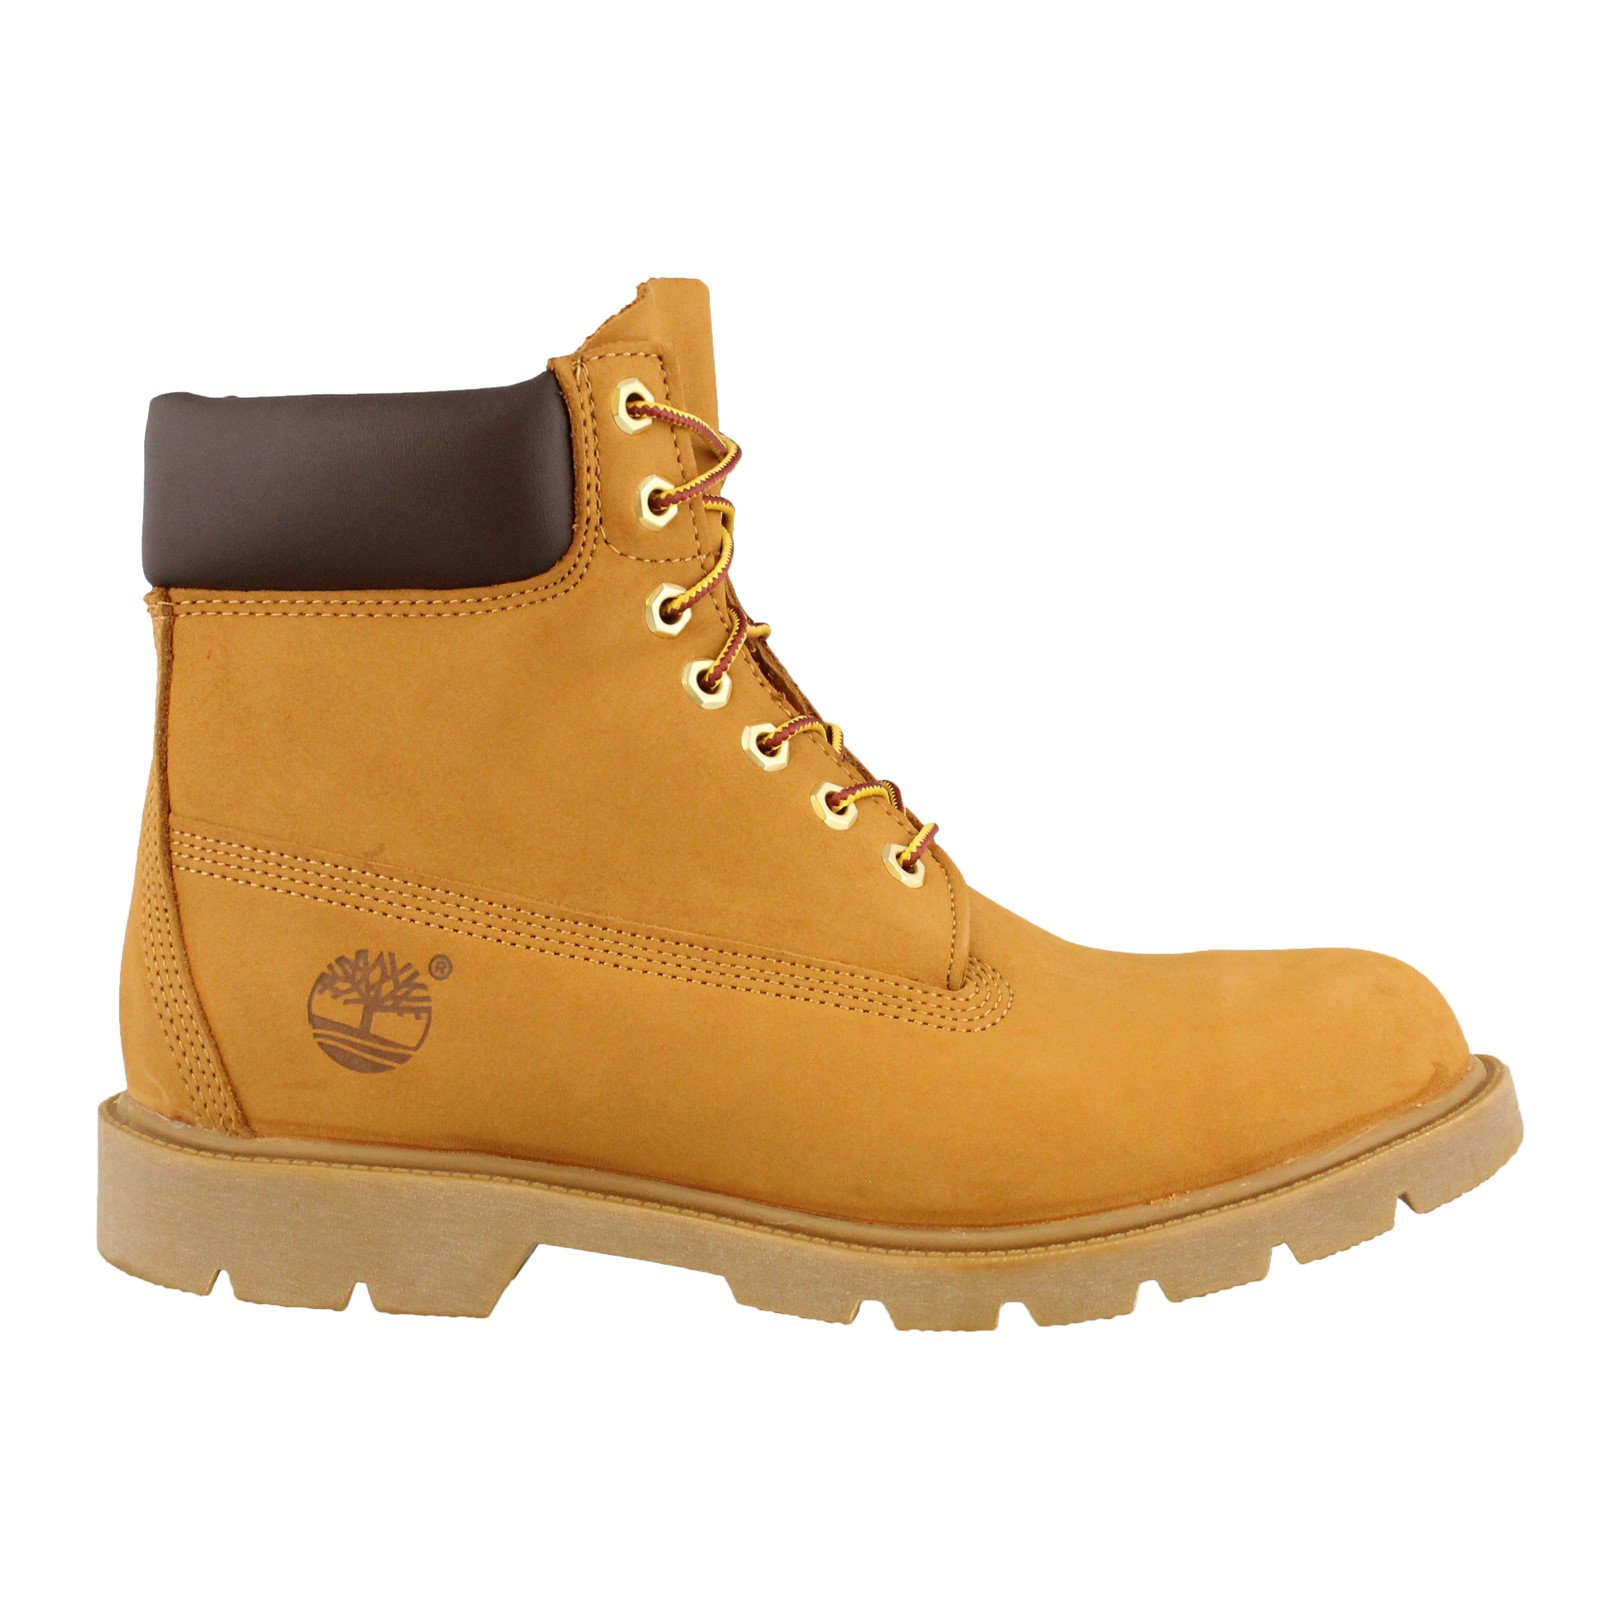 dd0e24d5680 Men's Timberland, Icon 6 Inch Basic Waterproof Boots